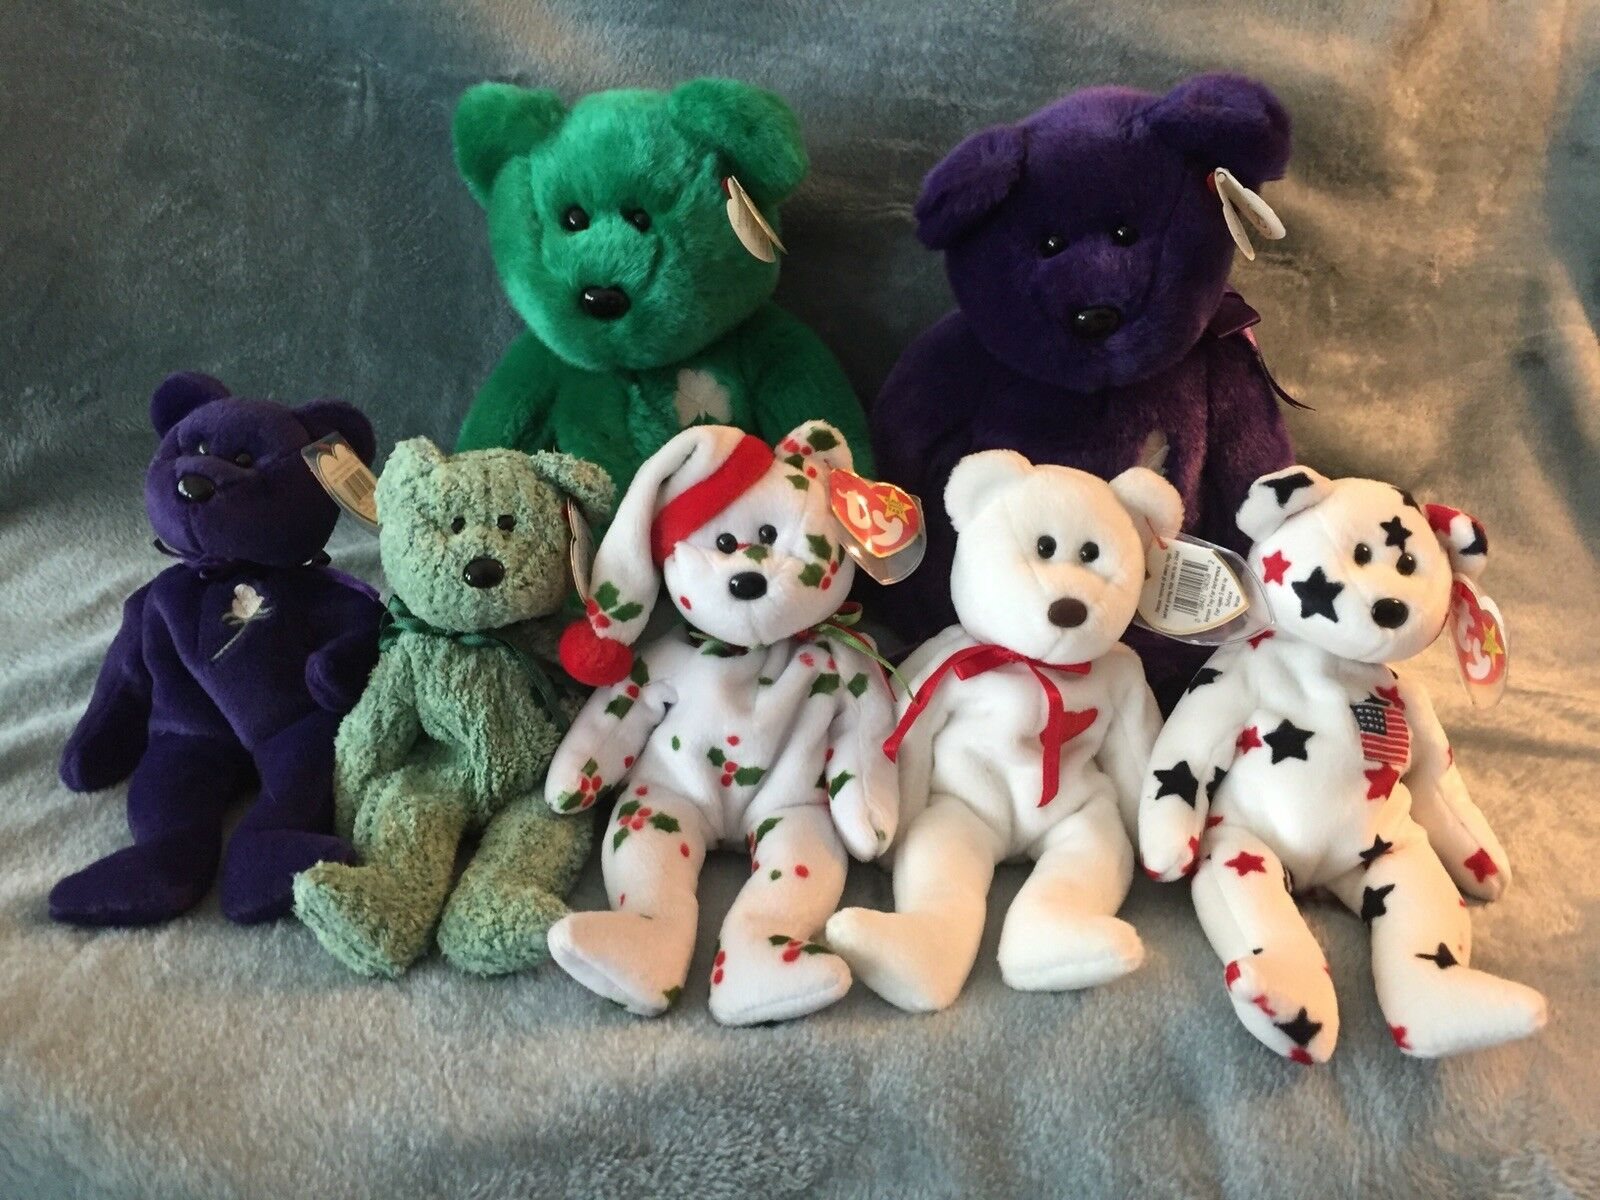 Beanie Baby bears - Group of 7 , Two Full Size Bears and Five regular bears.